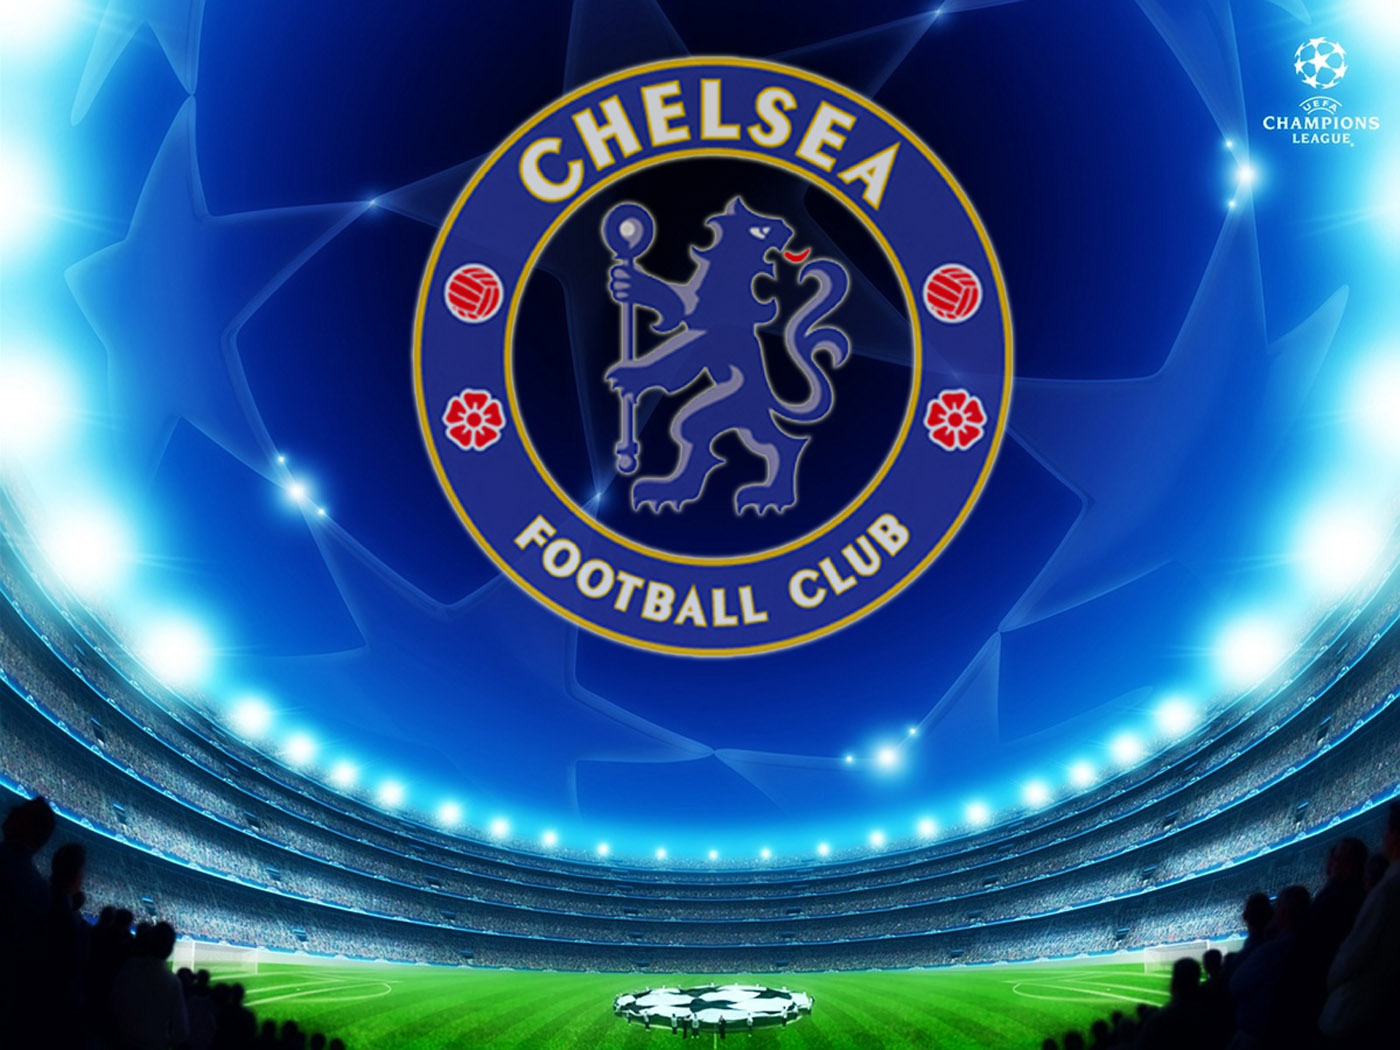 Chelsea Football Club Hd Wallpapers 2013 2014 All About